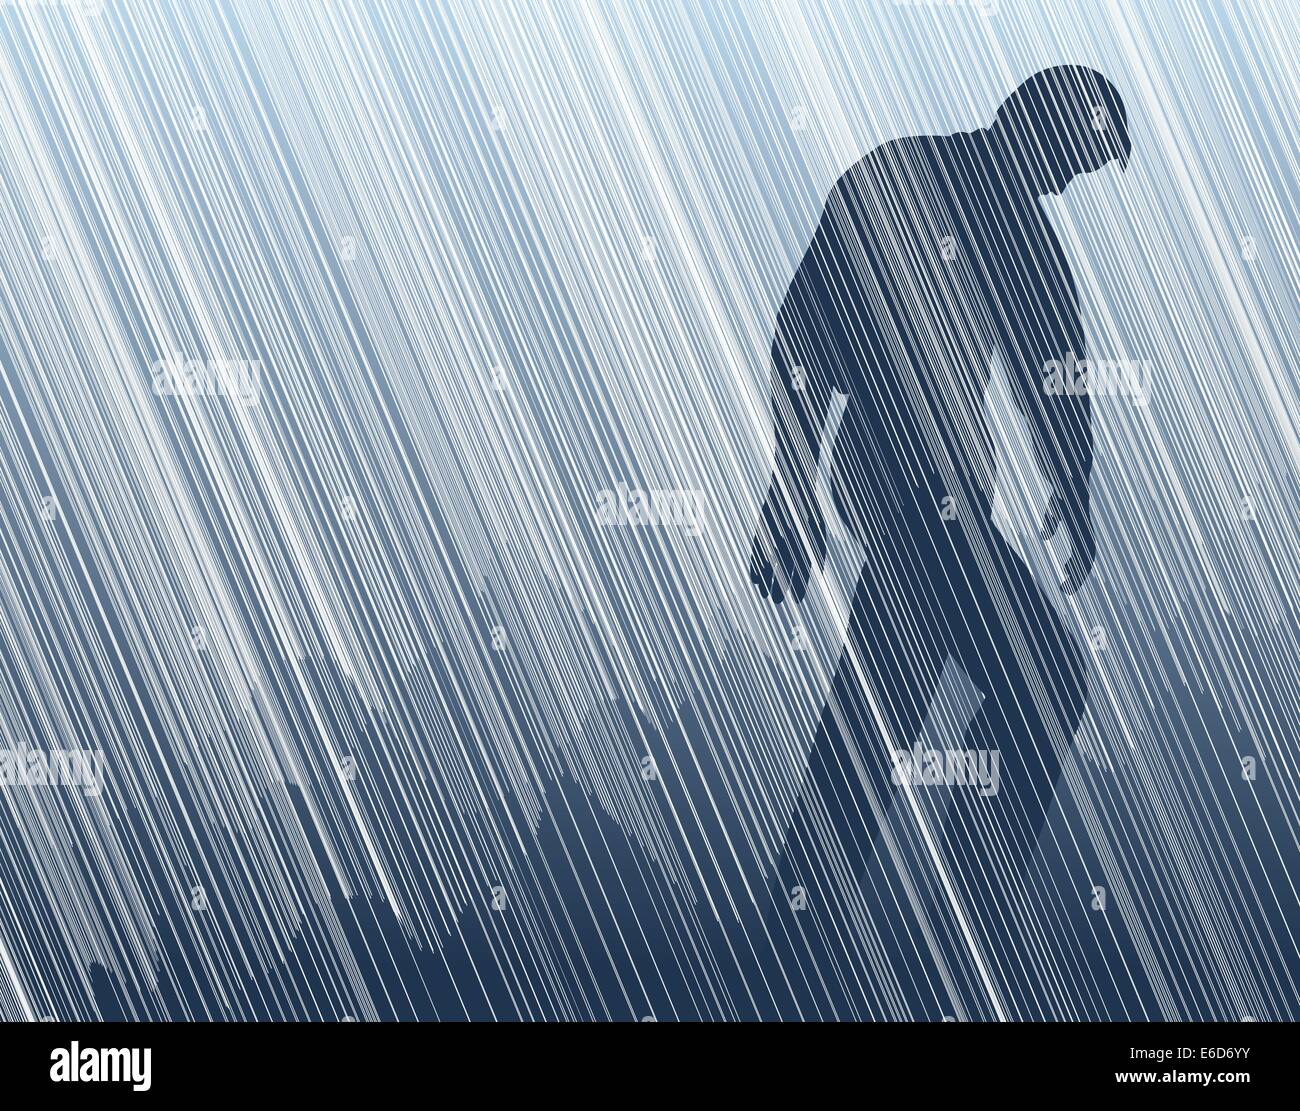 Editable vector illustration of a man walking in torrential rain Stock Vector